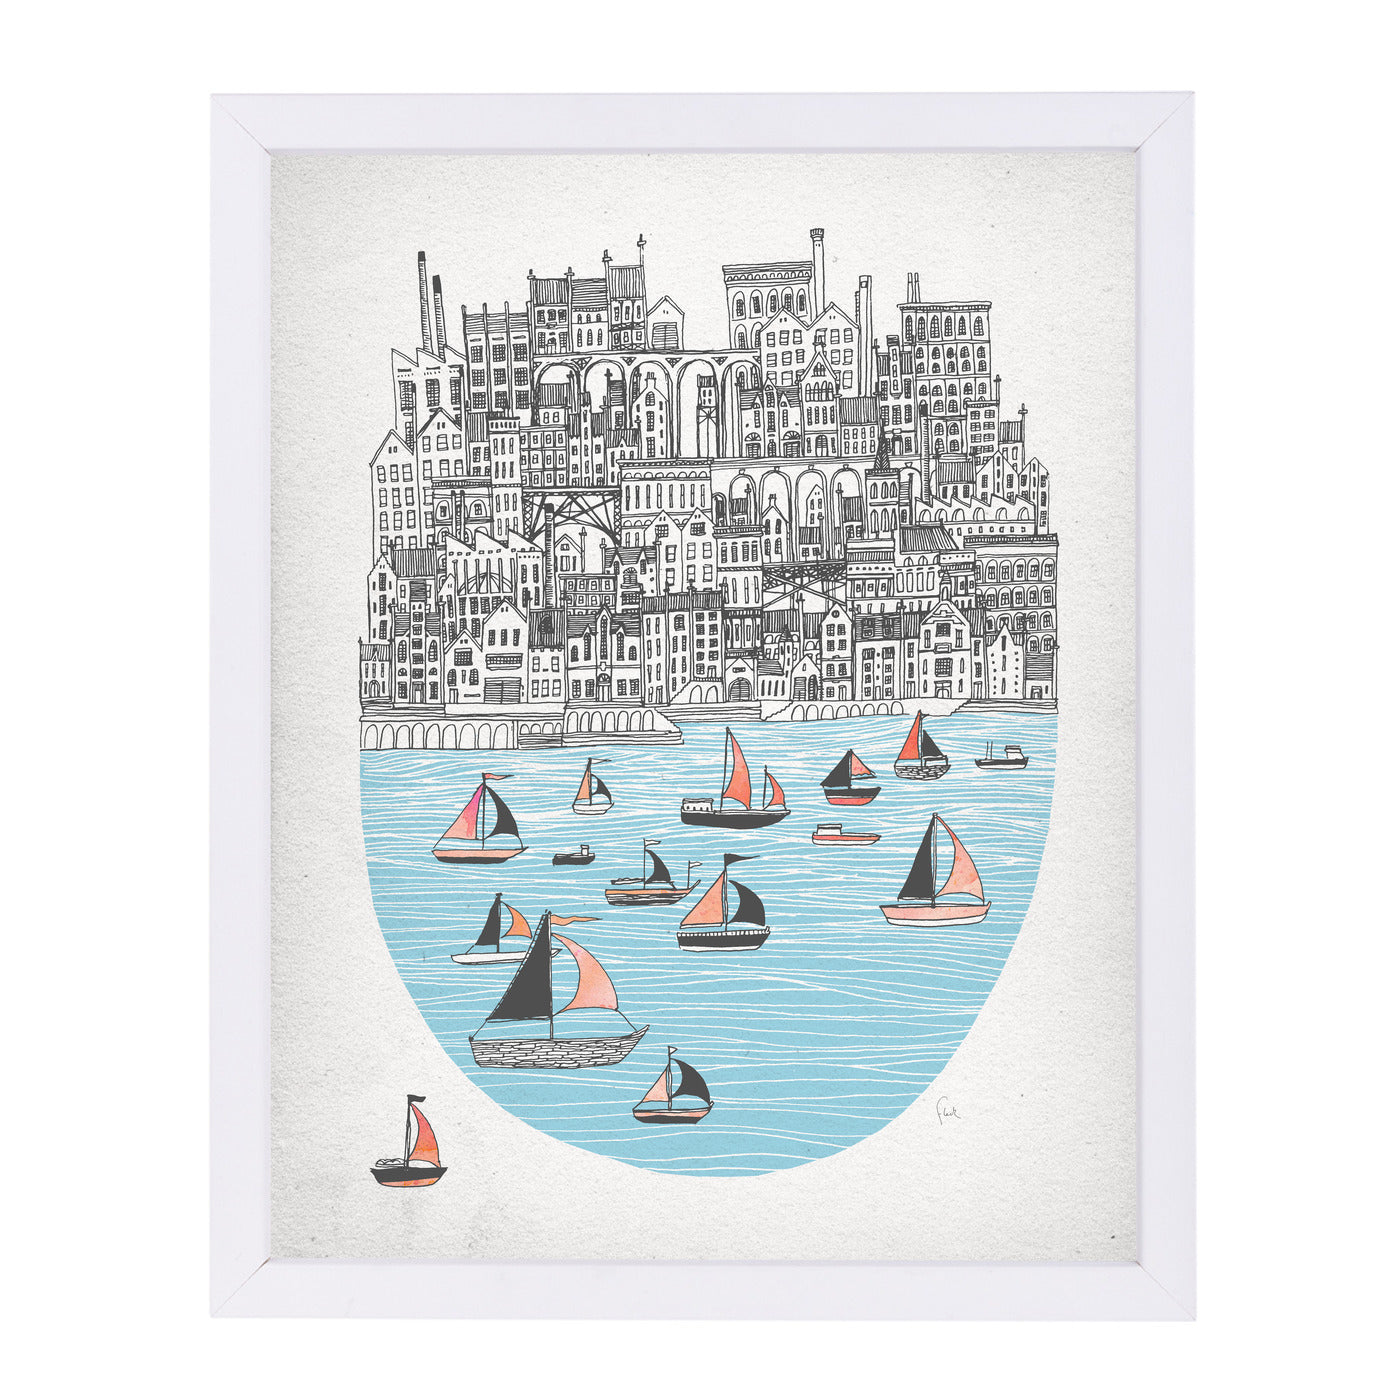 Joppa by David Fleck Framed Print - Americanflat